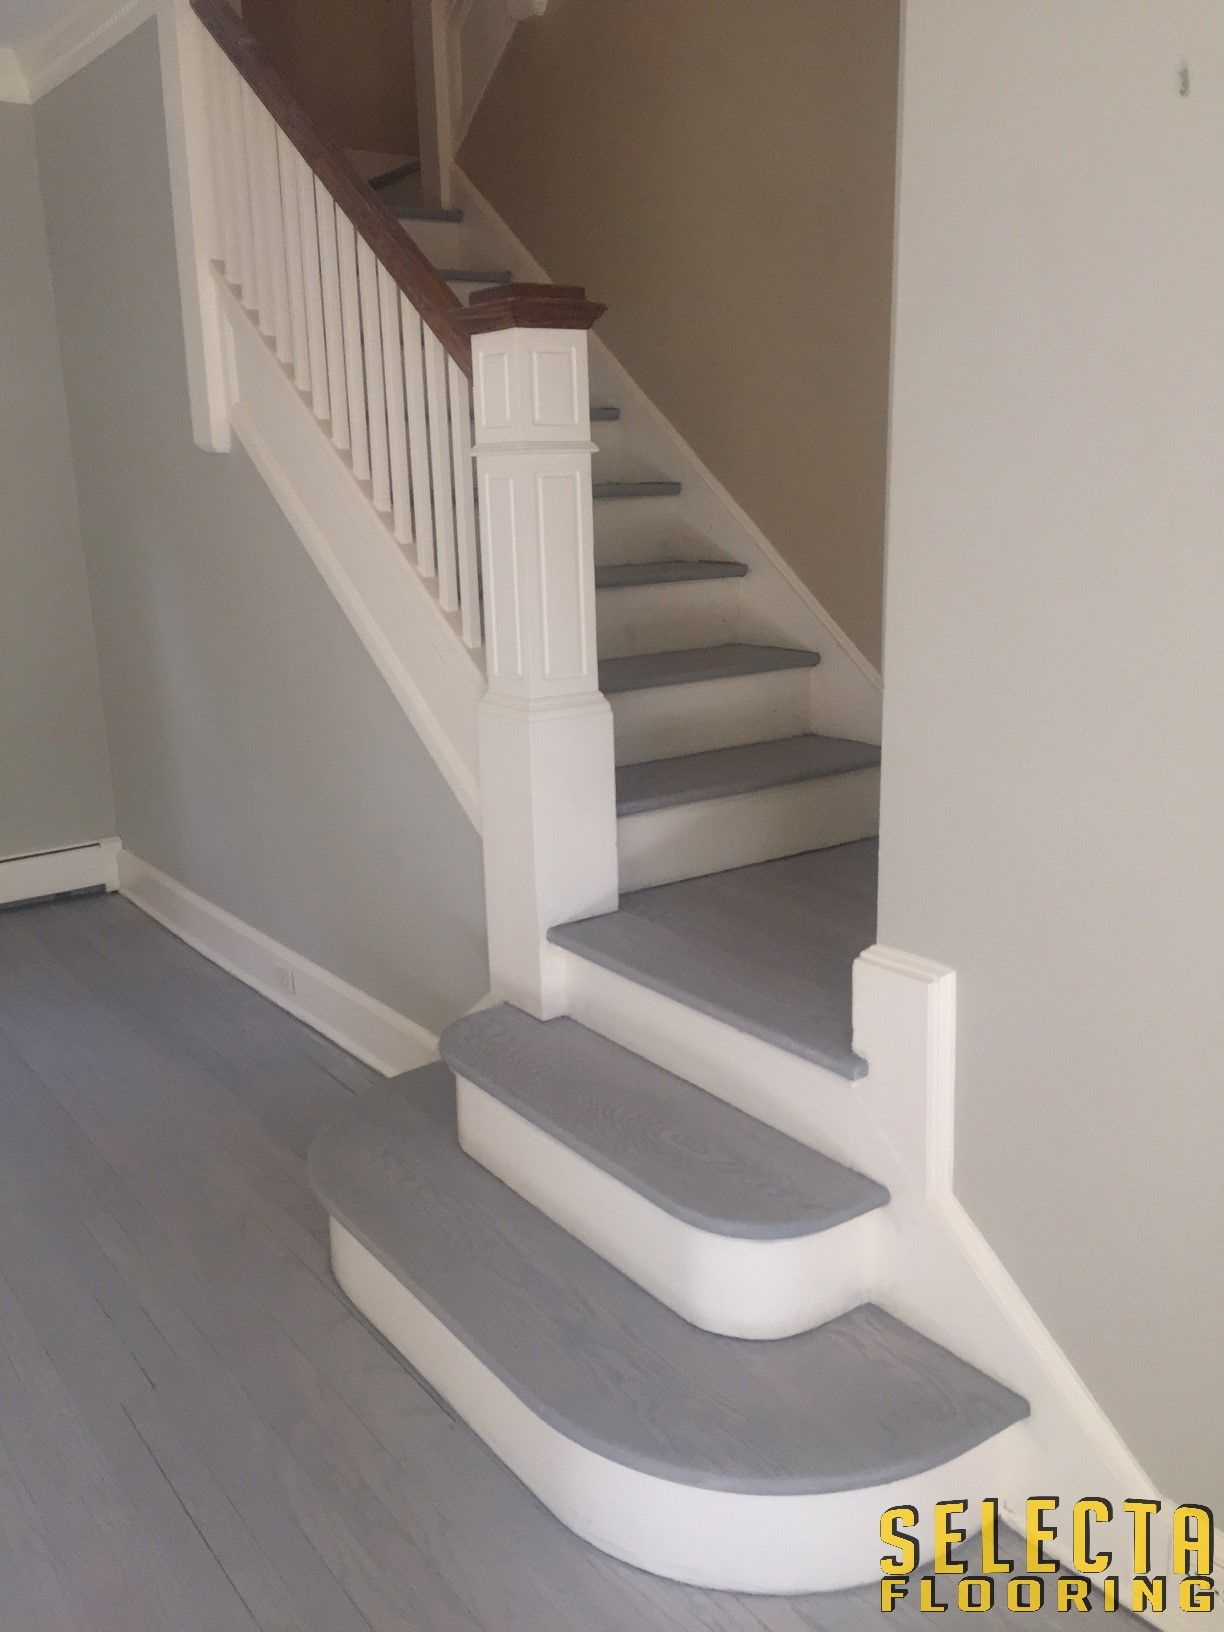 Best Rubio Monocoat Staircase In Ash Grey With Aqua Pre Color 400 x 300